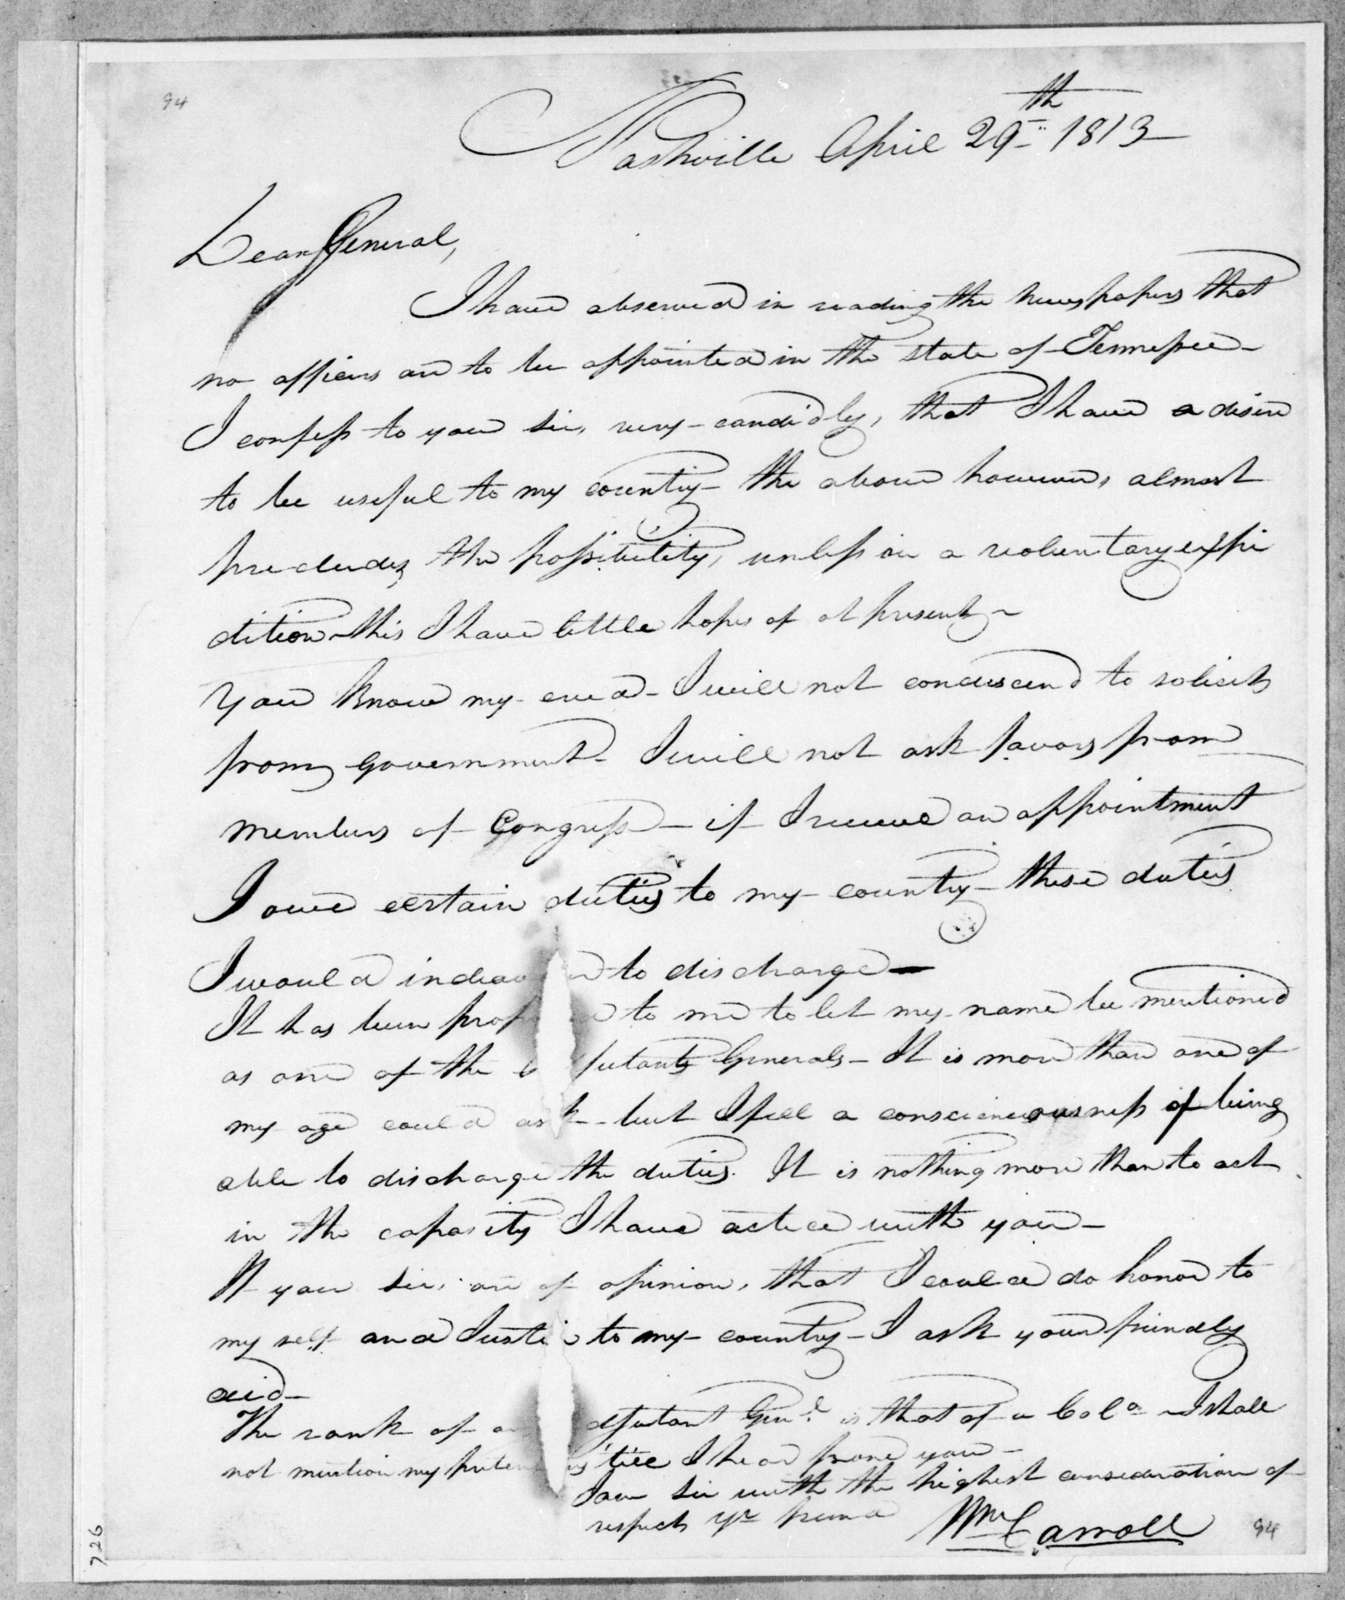 William Carroll to Andrew Jackson, April 29, 1813